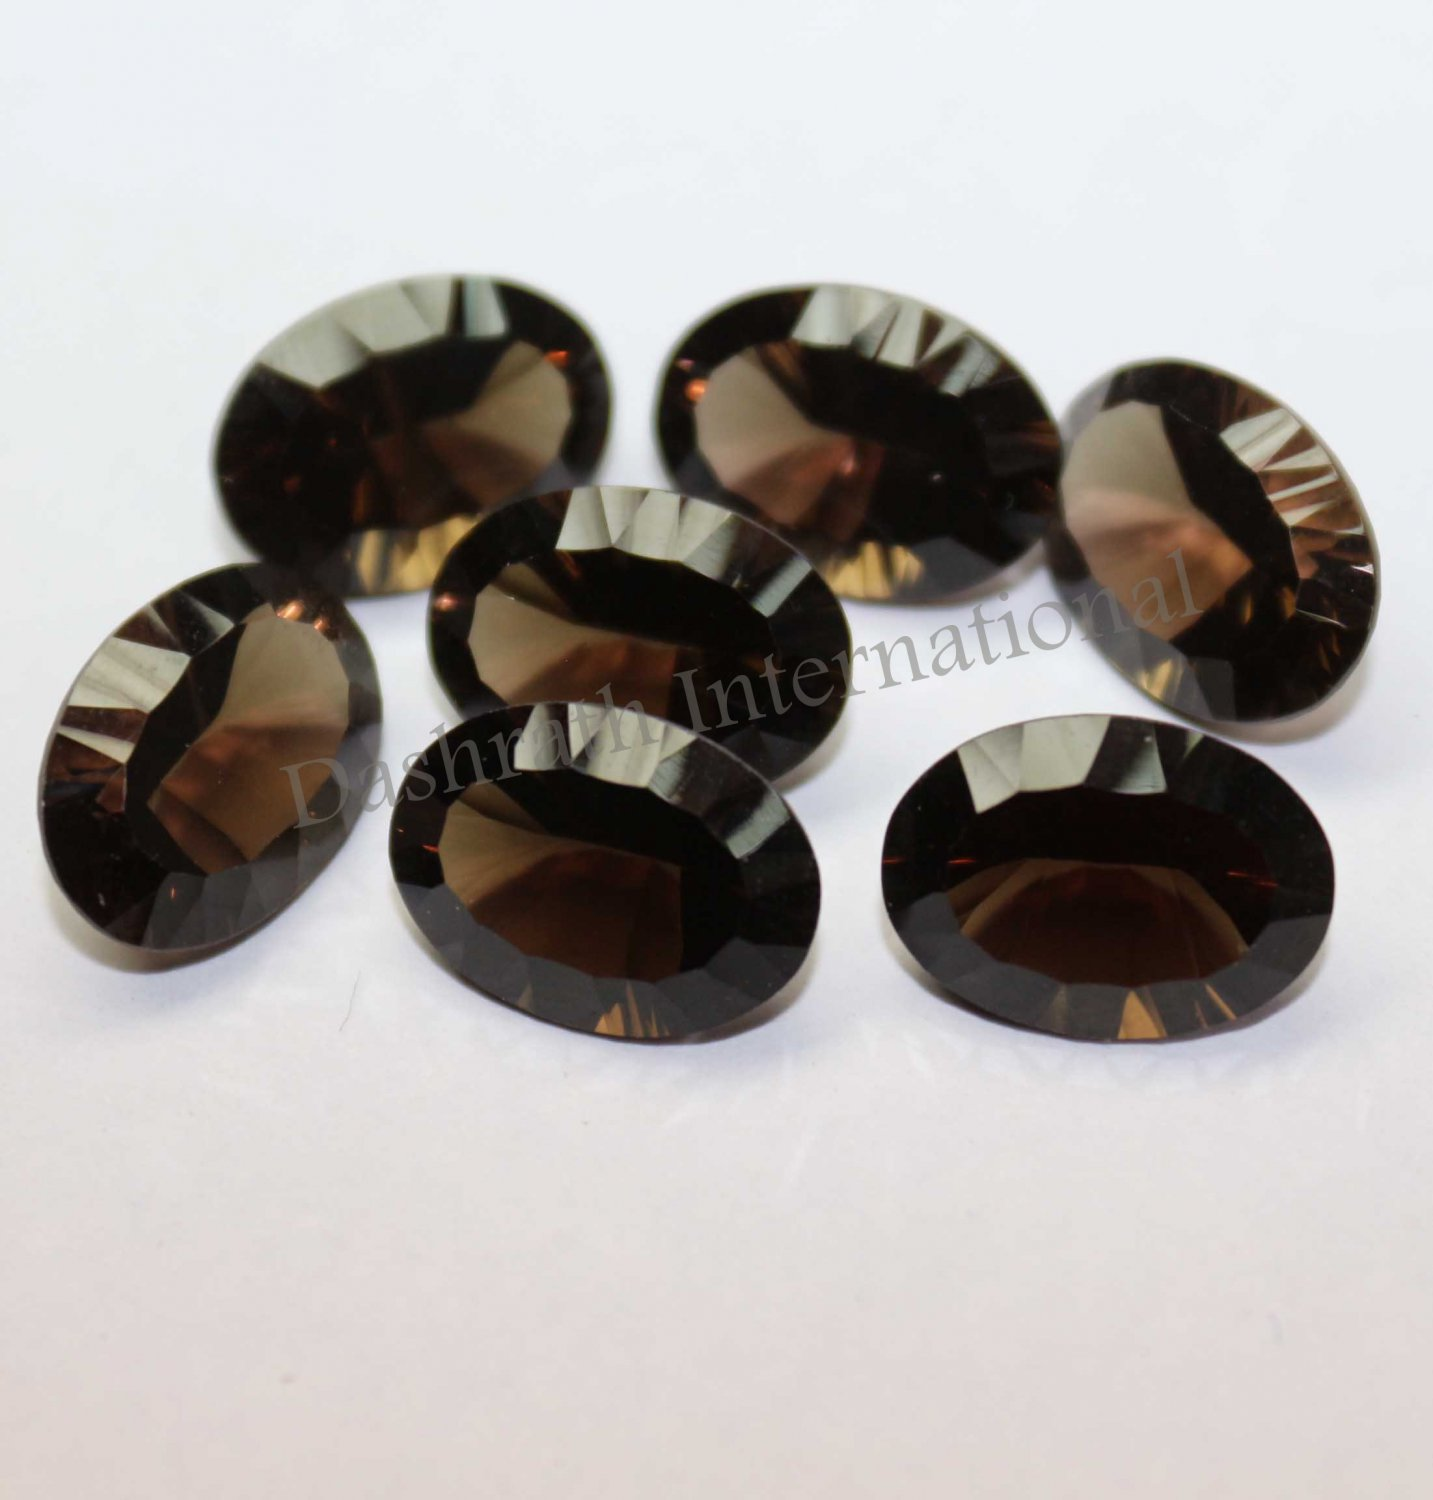 12x16mm Natural Smoky Quartz Concave Cut  Oval  1 Piece  (SI) Top Quality  Loose Gemstone